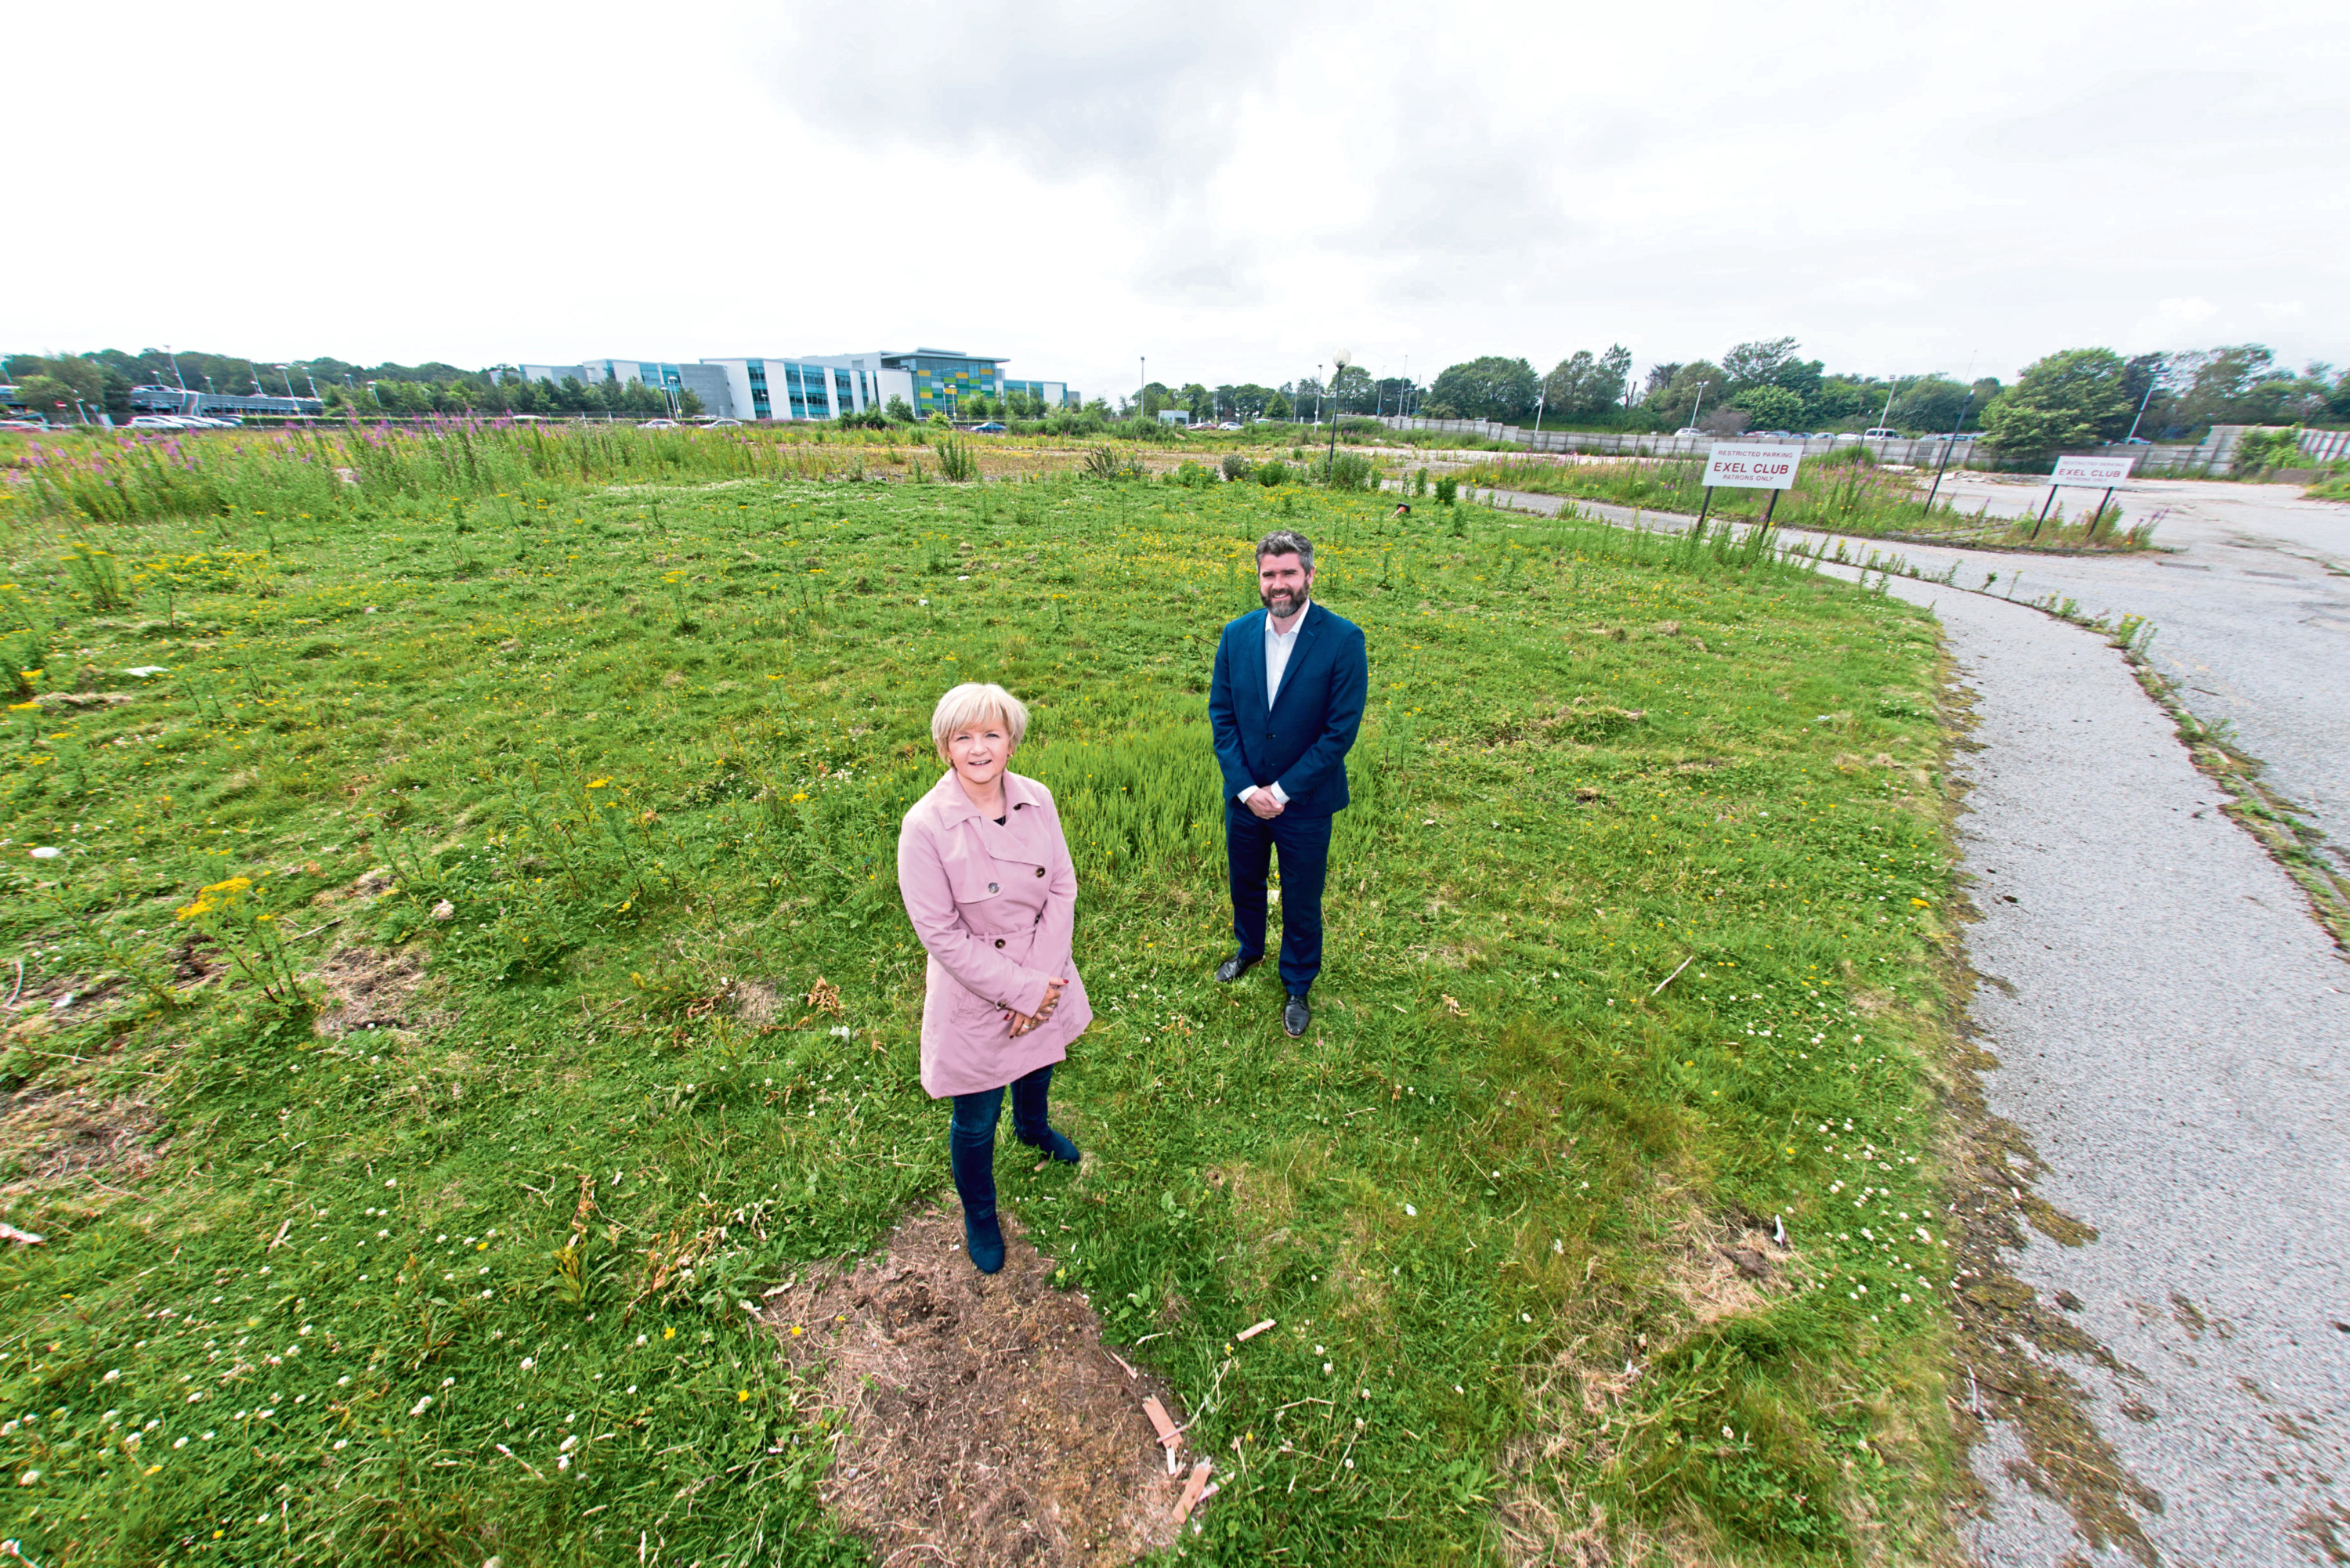 Aberdeen City Council Co-Leader, Councillor Jenny Lain with Gordon Pirie of CBRE at the site